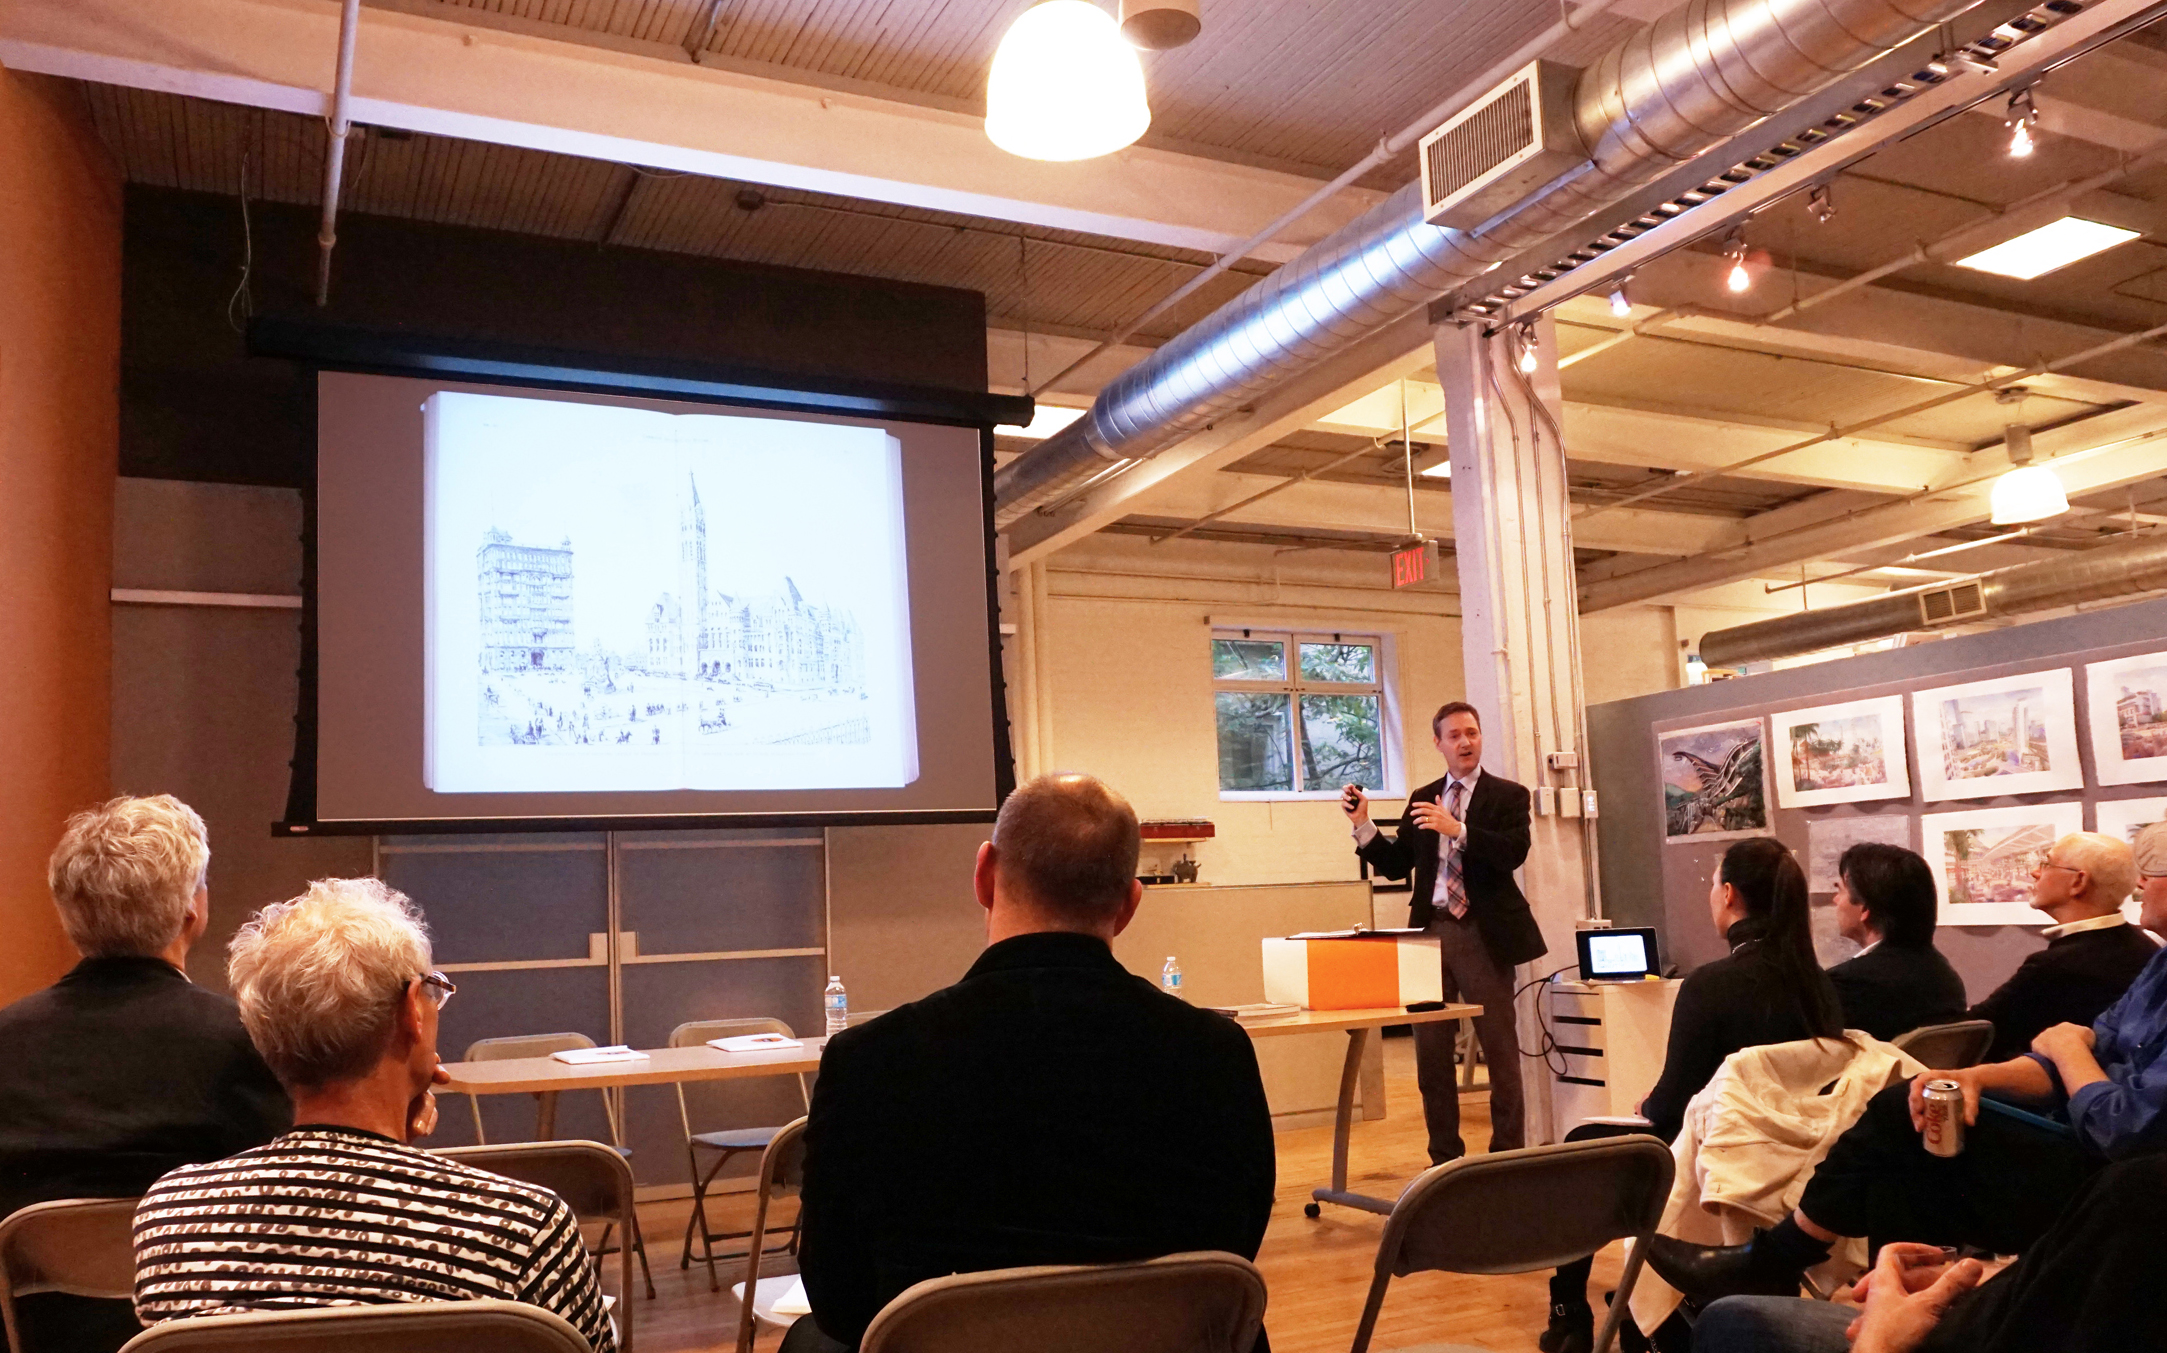 A lively and engaging panel discussion was held at Forrec on Thursday evening, hosted by long term ASAI member Gordon Grice. The program began with a presentation by Unbuilt Toronto author Mark Osbaldeston. His talk focused on the 1957 Toronto City hall competition, while touching on other unbuilt projects, such as Vimy Circle, that still live on in the popular imagination. Osbaldeston's work reminds us just how much the image contributes to the persistent allure of the could-have-been (or perhaps in some cases the should-have-been).